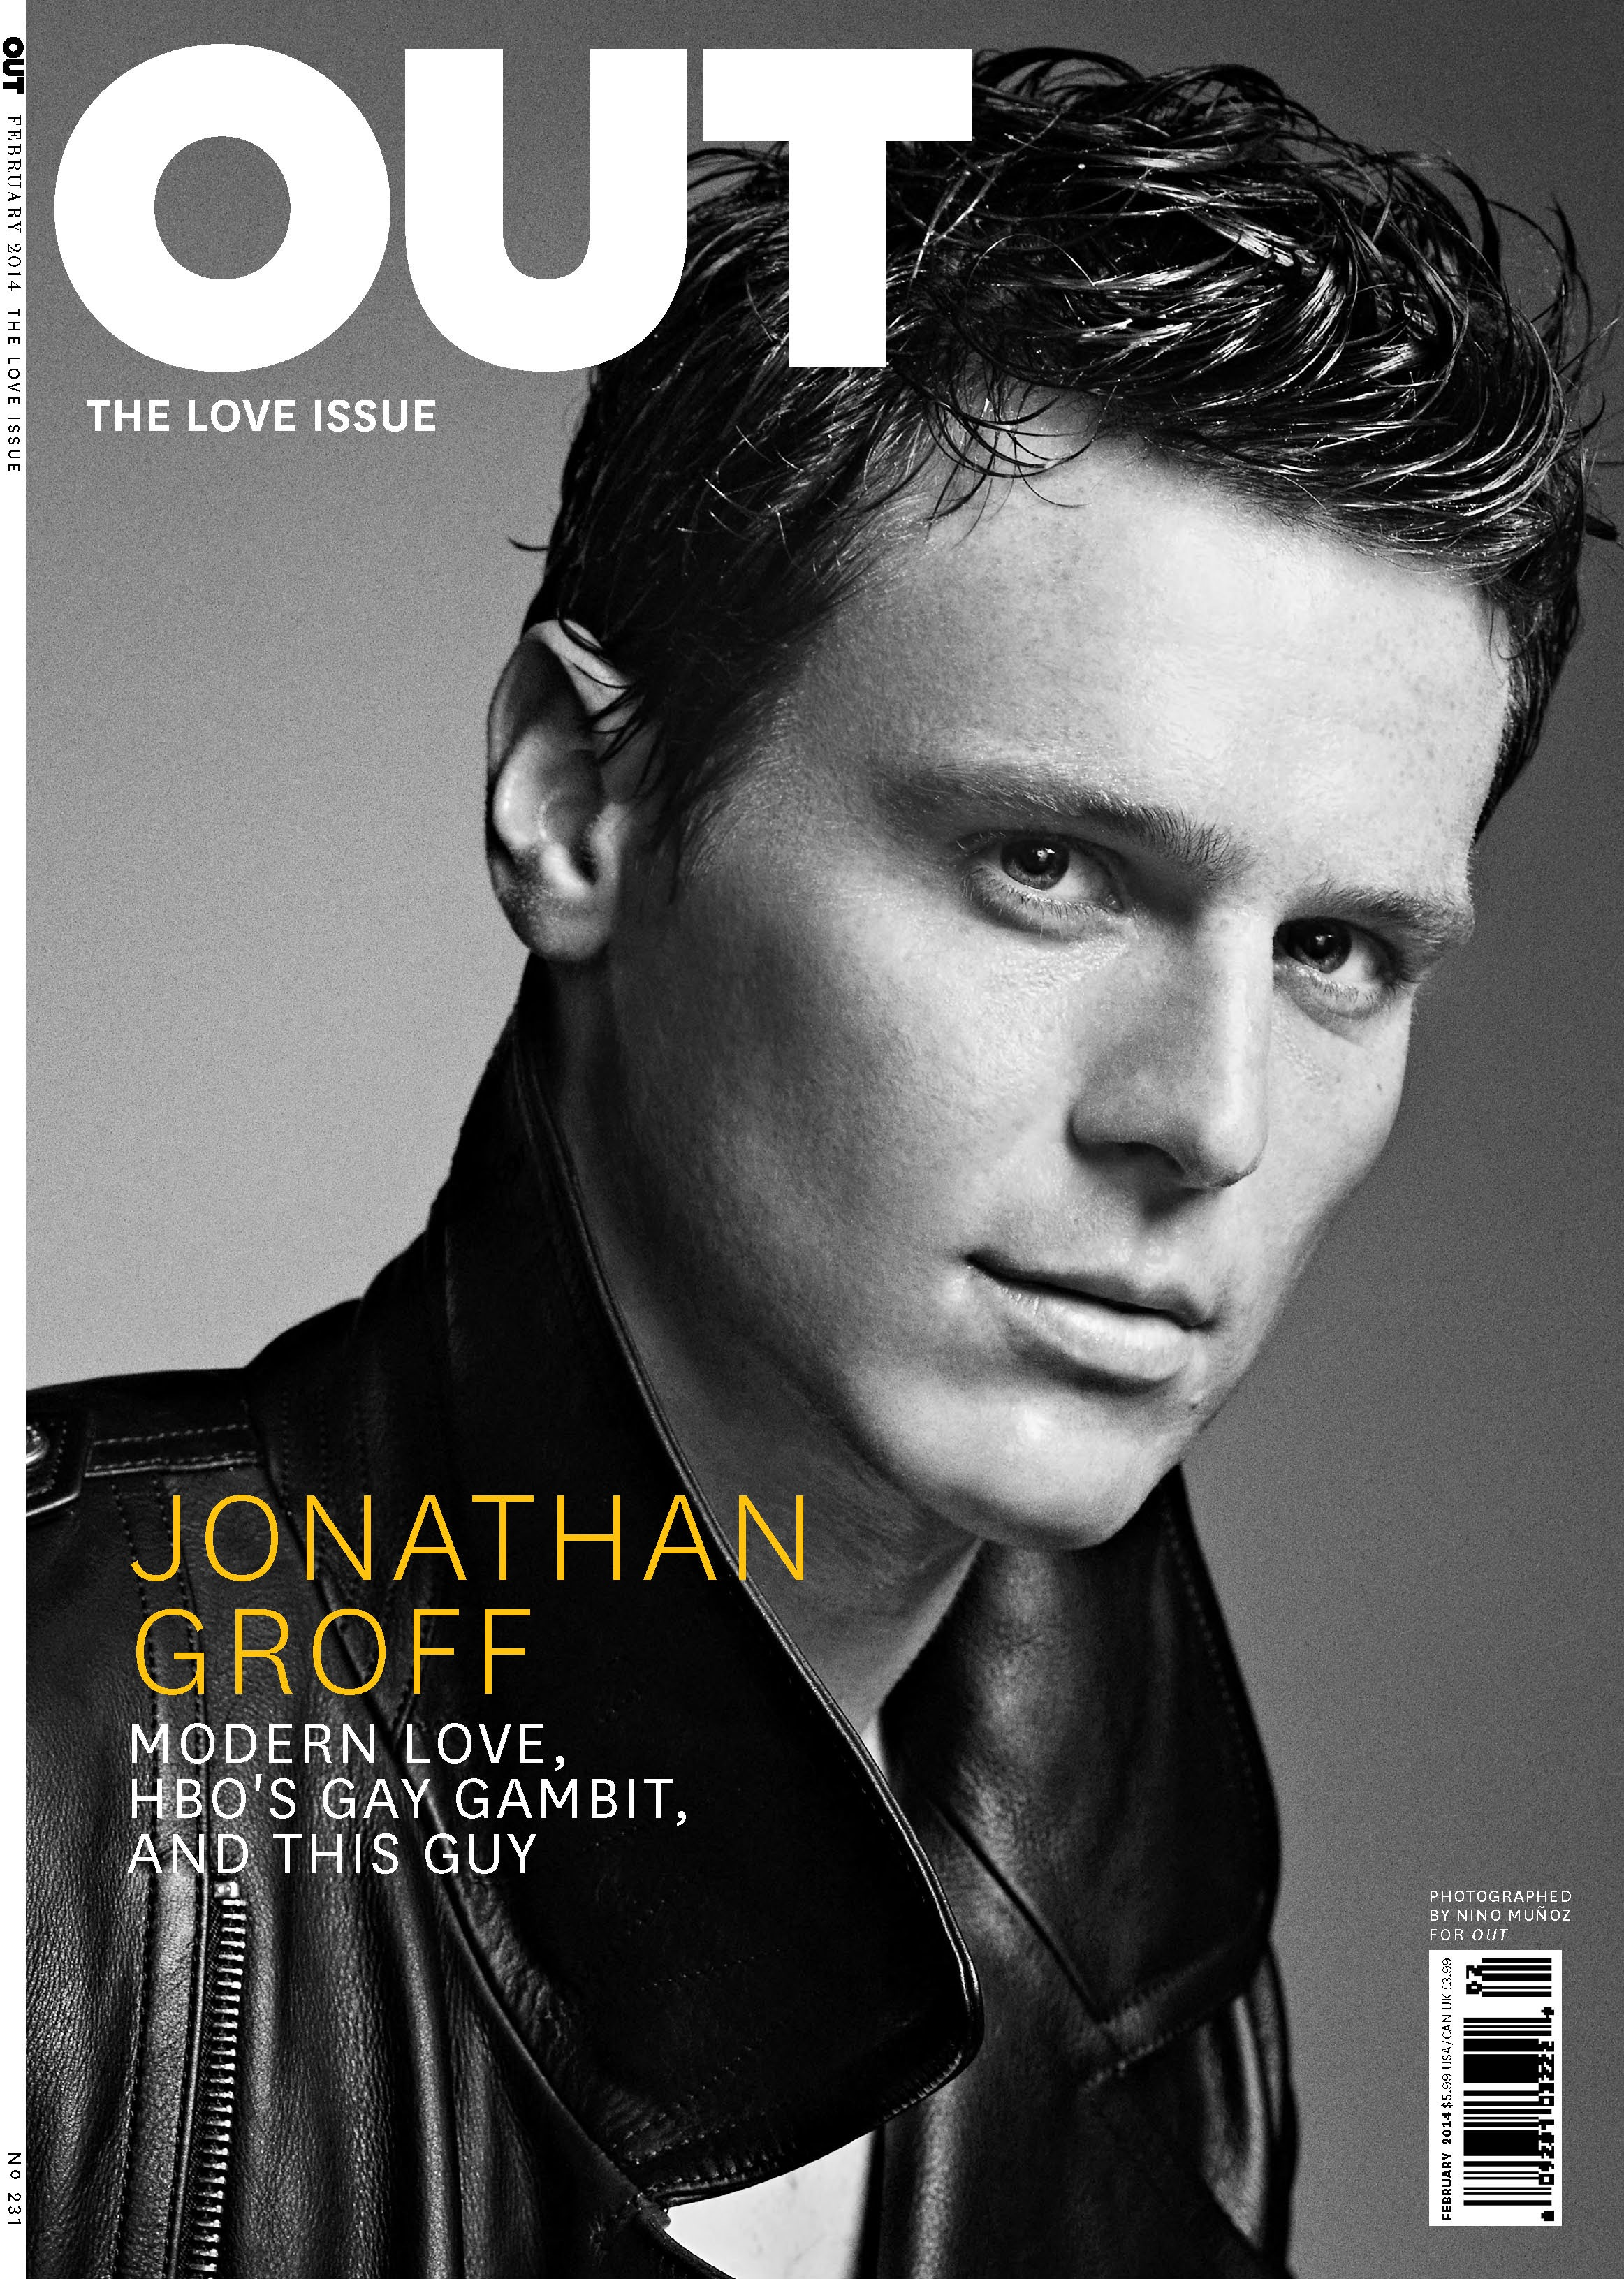 Jonathan Groff  Photo by Nino Mu  241 oz for Out  February 2014 issue Jonathan Groff Shirtless